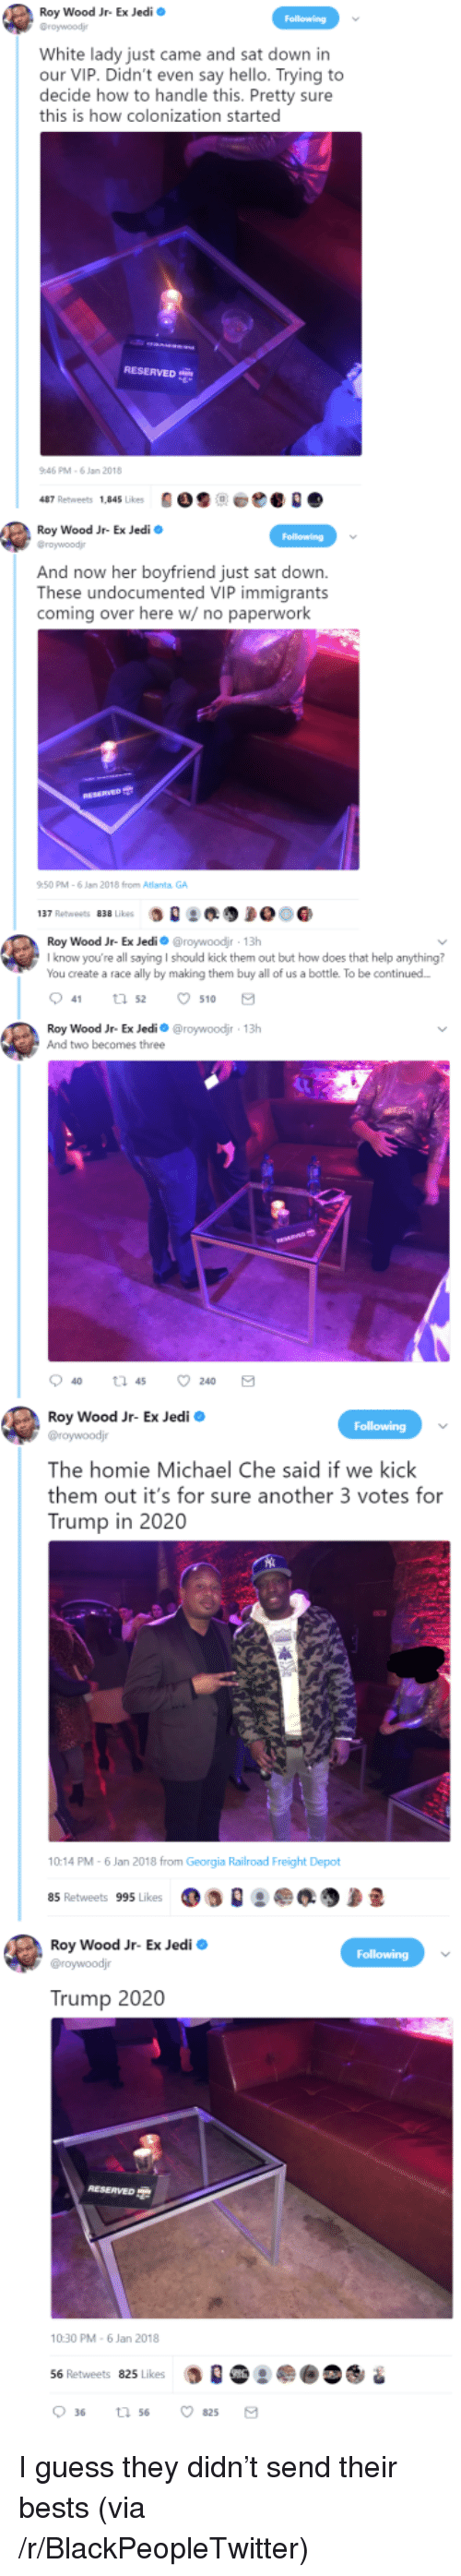 Blackpeopletwitter, Hello, and Homie: Roy Wood Jr- Ex Jedi  Graywoodj  White lady just came and sat down in  our VIP. Didn't even say hello. Trying to  decide how to handle this. Pretty sure  this is how colonization started  RESERVED  46 PM-6 Jan 2018  487 Retweets 1,845 Likes900e  Roy Wood Jr- Ex Jedi  Groywoodj  And now her boyfriend just sat down.  These undocumented VIP immigrants  coming over here w/ no paperwork  50 PM-6 Jan 2018 from Atlanta GA  :缑  137 Retweets 838 Likes  Roy Wood Jr-Ex Jedi Ф @roywoodir , 13h  I know you're all saying I should kick them out but how does that help anything?  You create a race ally by making them buy all of us a bottle. To be continued  041 52 ㅇ510  Roy Wood Jr- Ex Jedio @roywoodjr 13h  And two becomes three  Roy Wood Jr- Ex Jedi o  The homie Michael Che said if we kick  them out it's for sure another 3 votes for  Trump in 2020  10:14 PM-6 Jan 2018 from Georgia Railroad Freight Depot  85 Retweets 995 Likes  Roy Wood Jr- Ex Jedi  Trump 2020  10:30 PM-6 Jan 2018  56 Retweets 825 Likes  0 36 <p>I guess they didn&rsquo;t send their bests (via /r/BlackPeopleTwitter)</p>